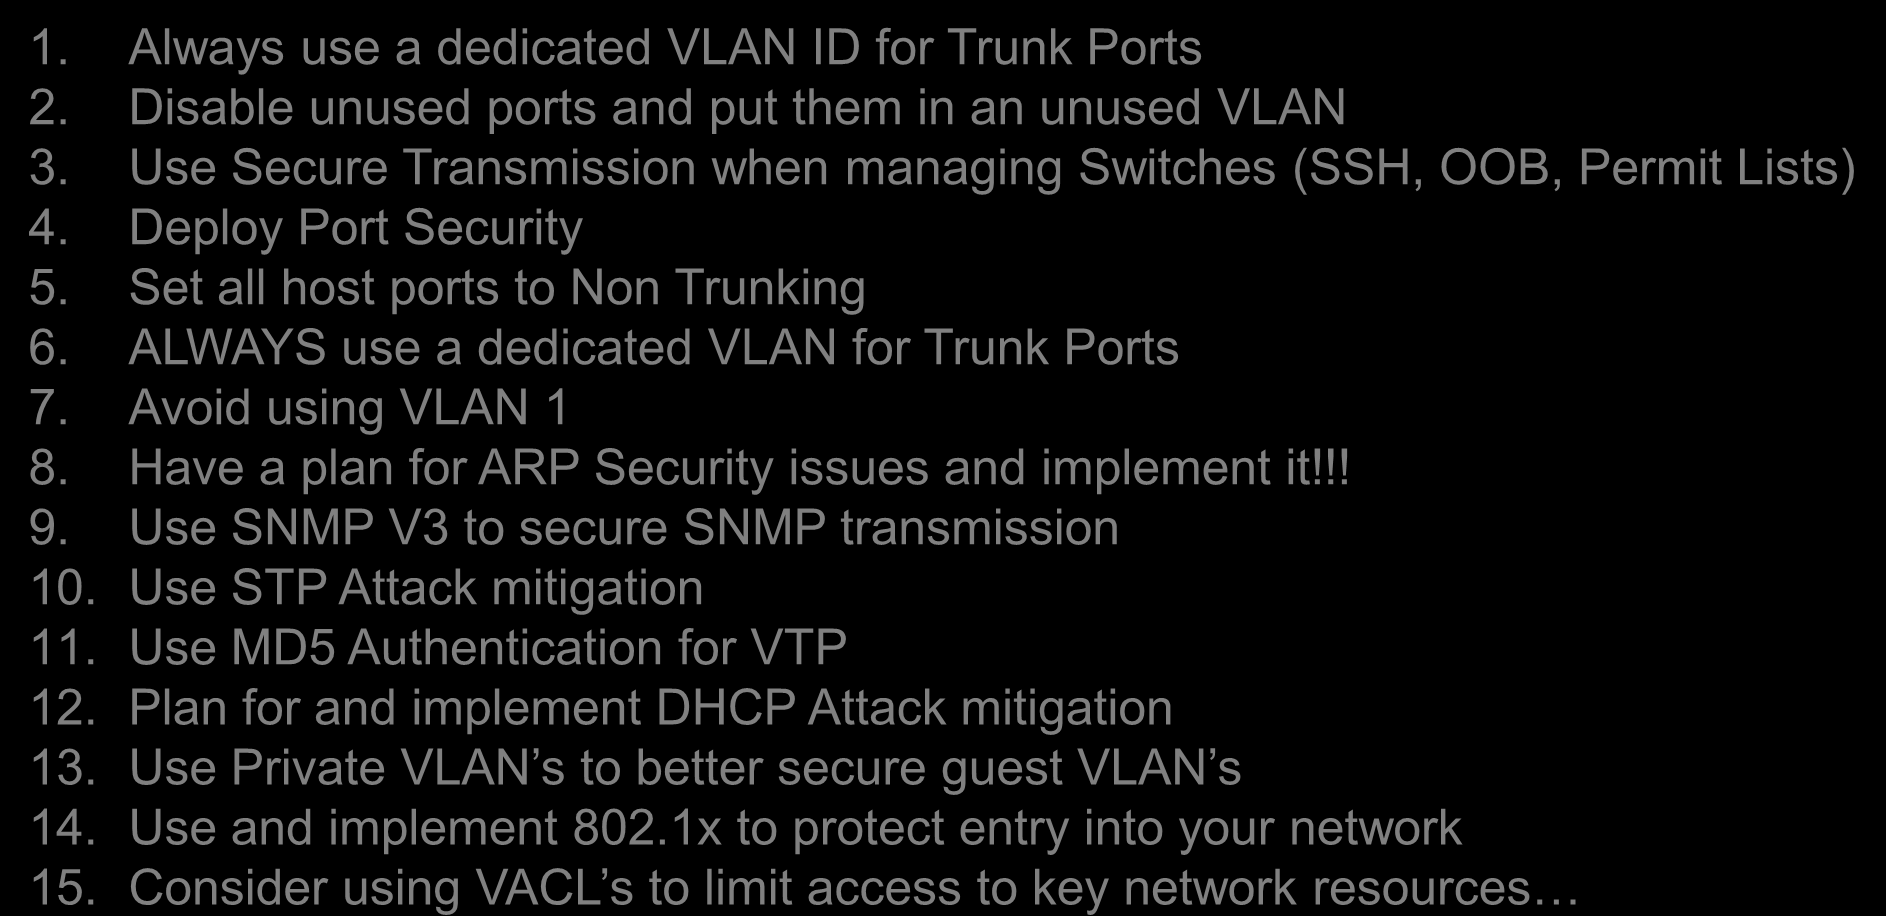 Best Practices for L2 Security (VPLS) 1. Always use a dedicated VLAN ID for Trunk Ports 2. Disable unused ports and put them in an unused VLAN 3.